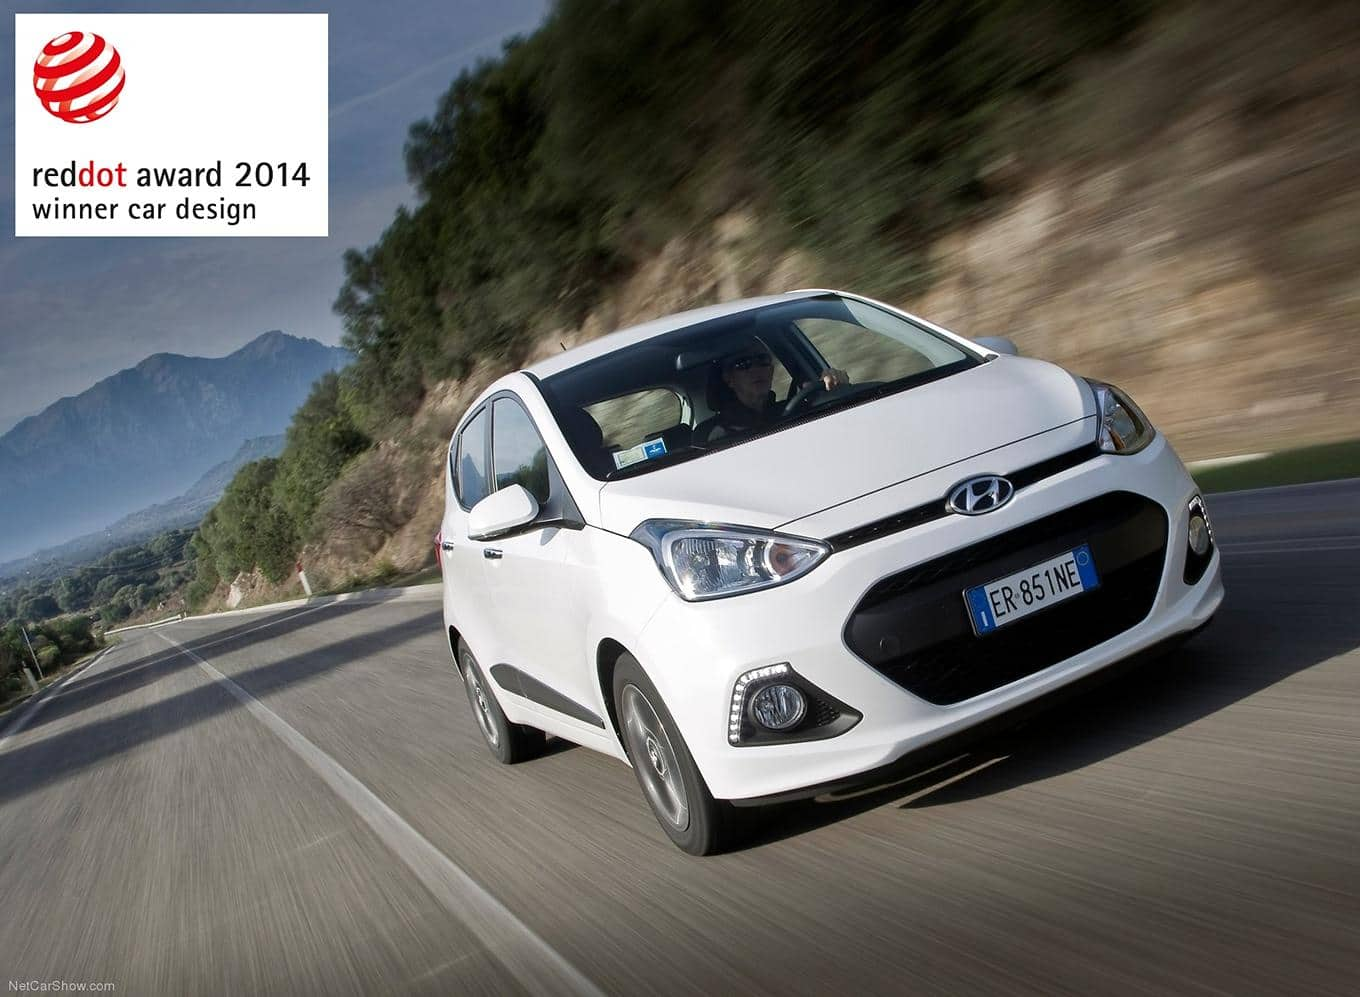 Hyundai Motor Receives Red Dot Design Awards for Two Models